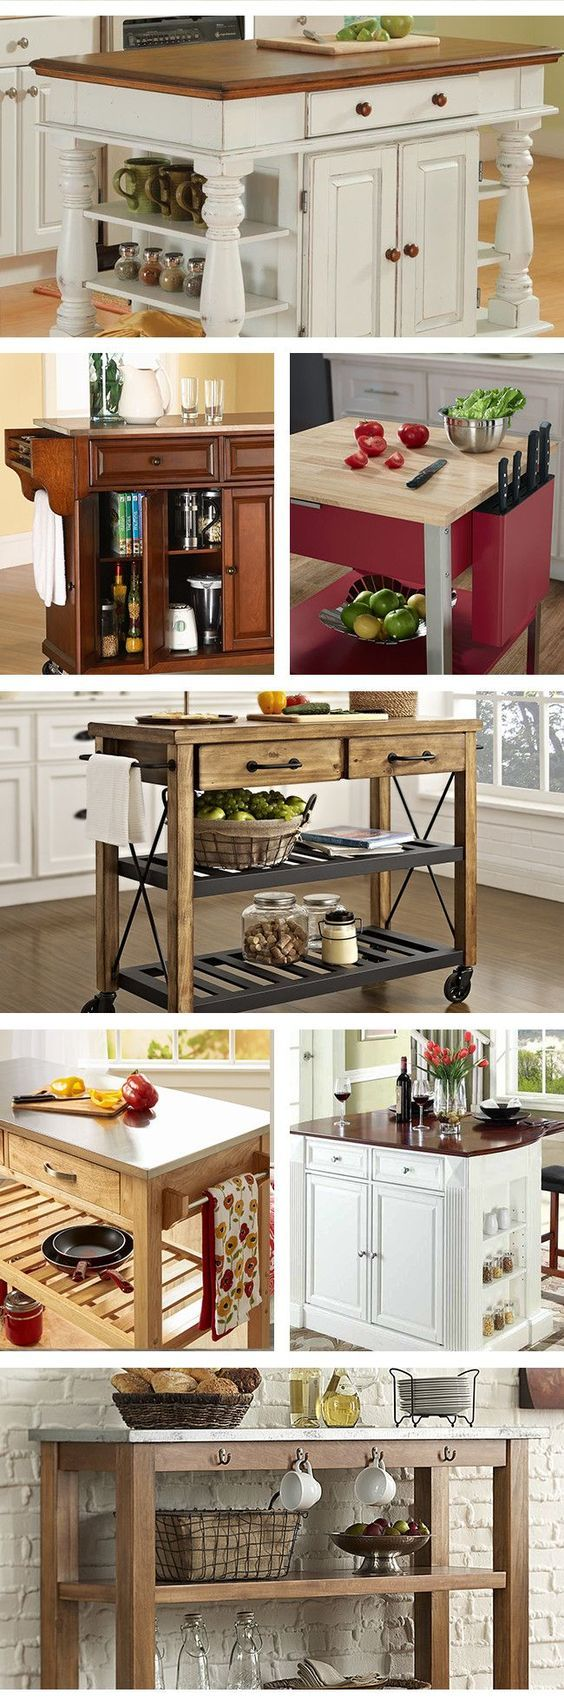 country kitchen storage ideas best 25 portable kitchen island ideas on 6147